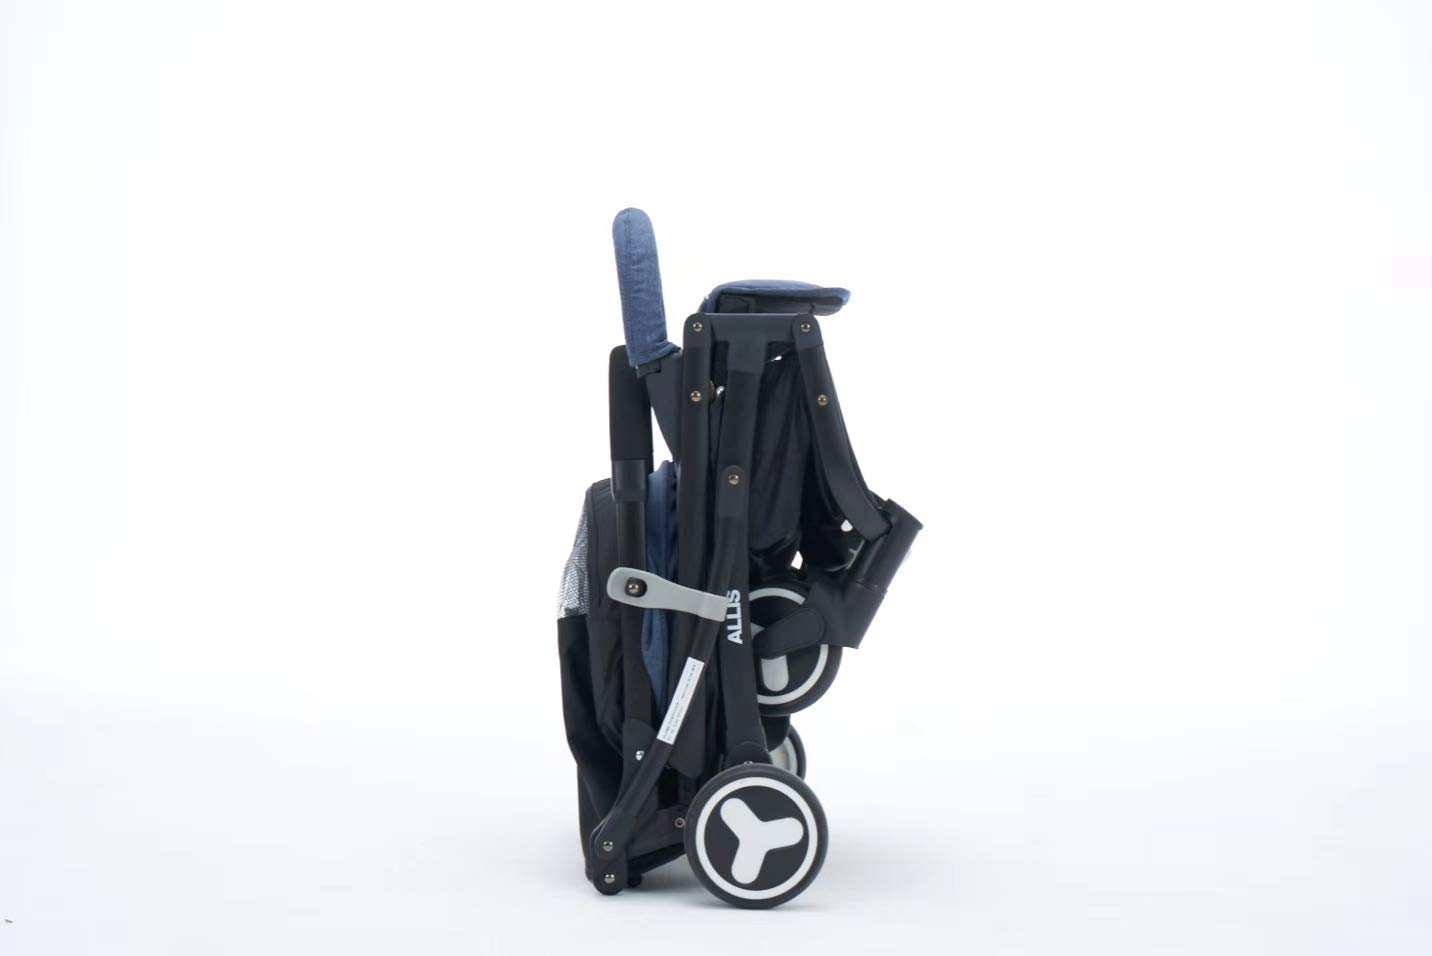 Allis Lightweight Plume Stroller Baby Buggy - Denim Allis Baby Made according to British Standard EN1888 and Fire Safety Regulations 1988. Lockable 360 swivel wheels, removable and suspension, Peek A Boo window/ Recline Seat/ Lie-flat position From 6M (Upto 15Kg Approx). Lightweight 6.7Kg only, Easy to fold with one hand only 9